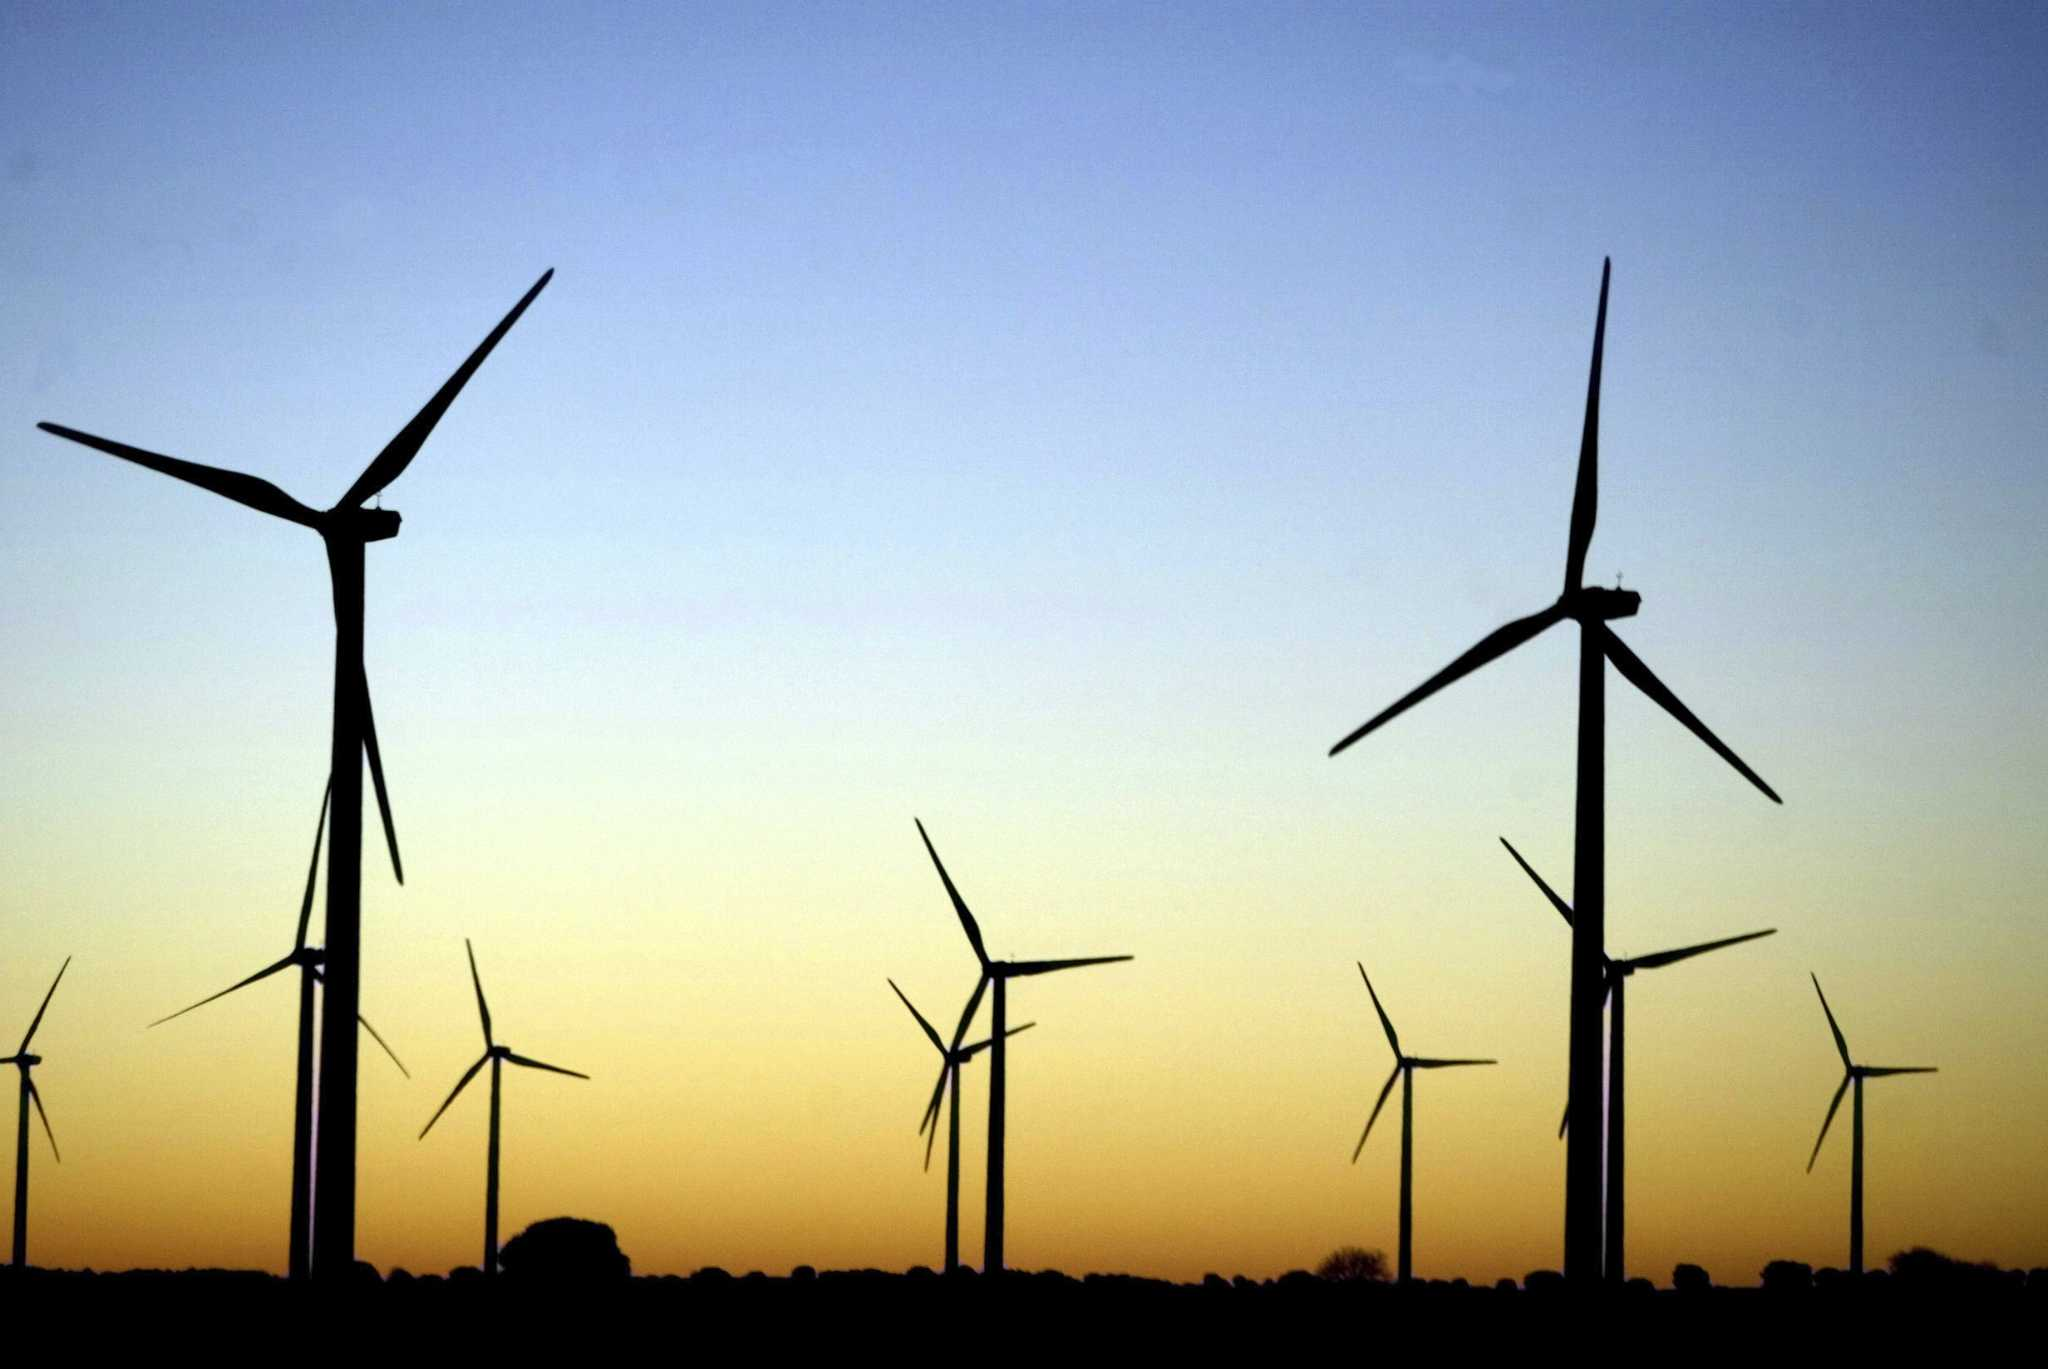 Largest wind farm in the U.S. to serve Panhandle - Houston Chronicle